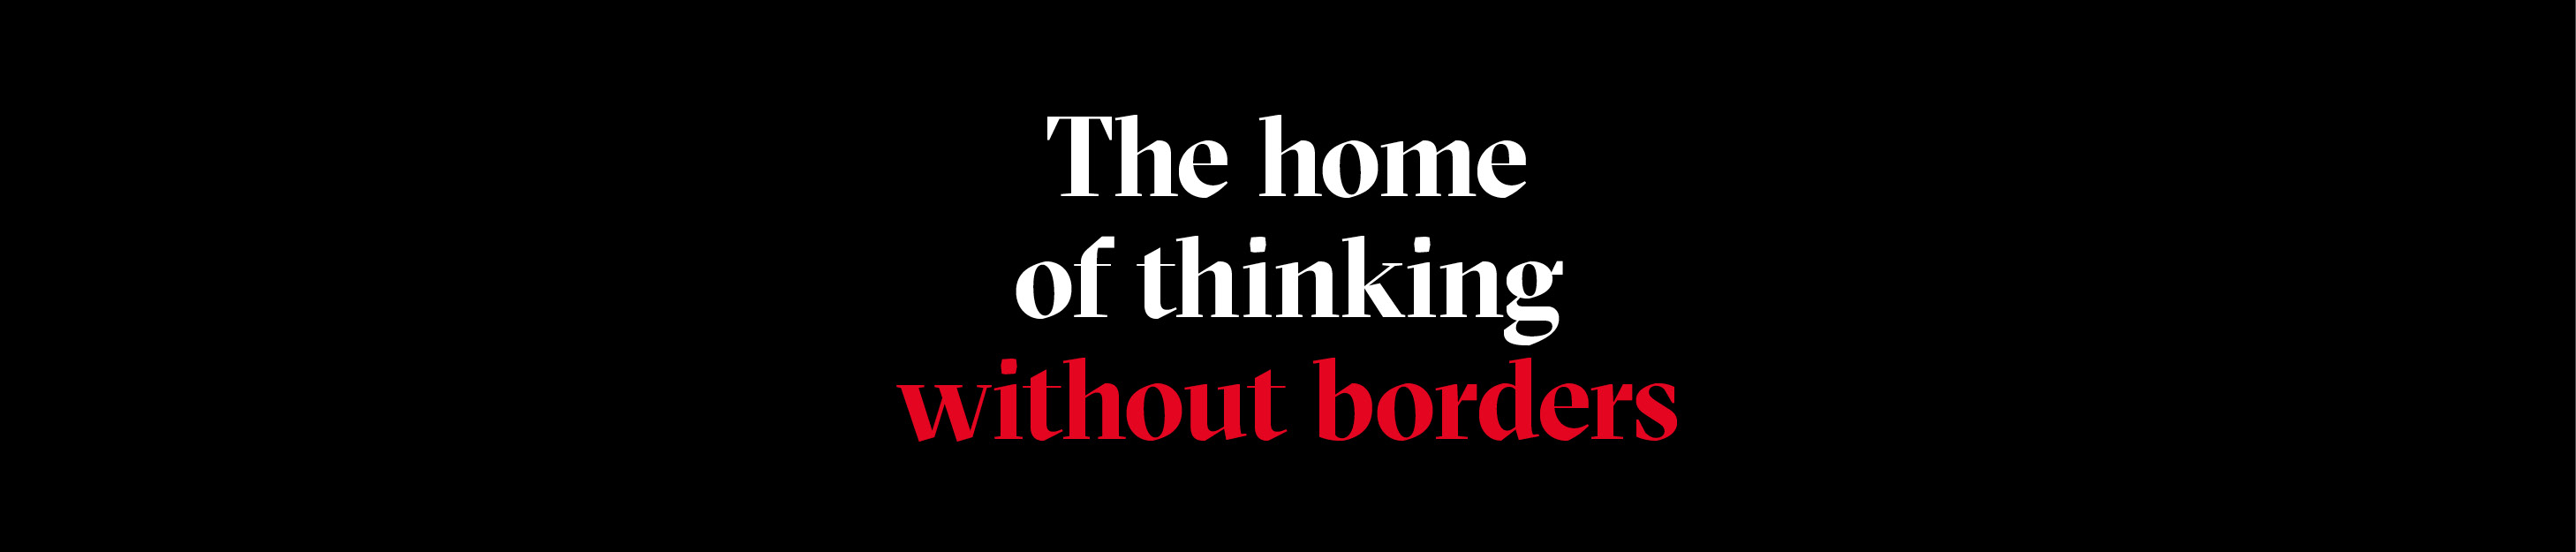 The home of thinking without borders